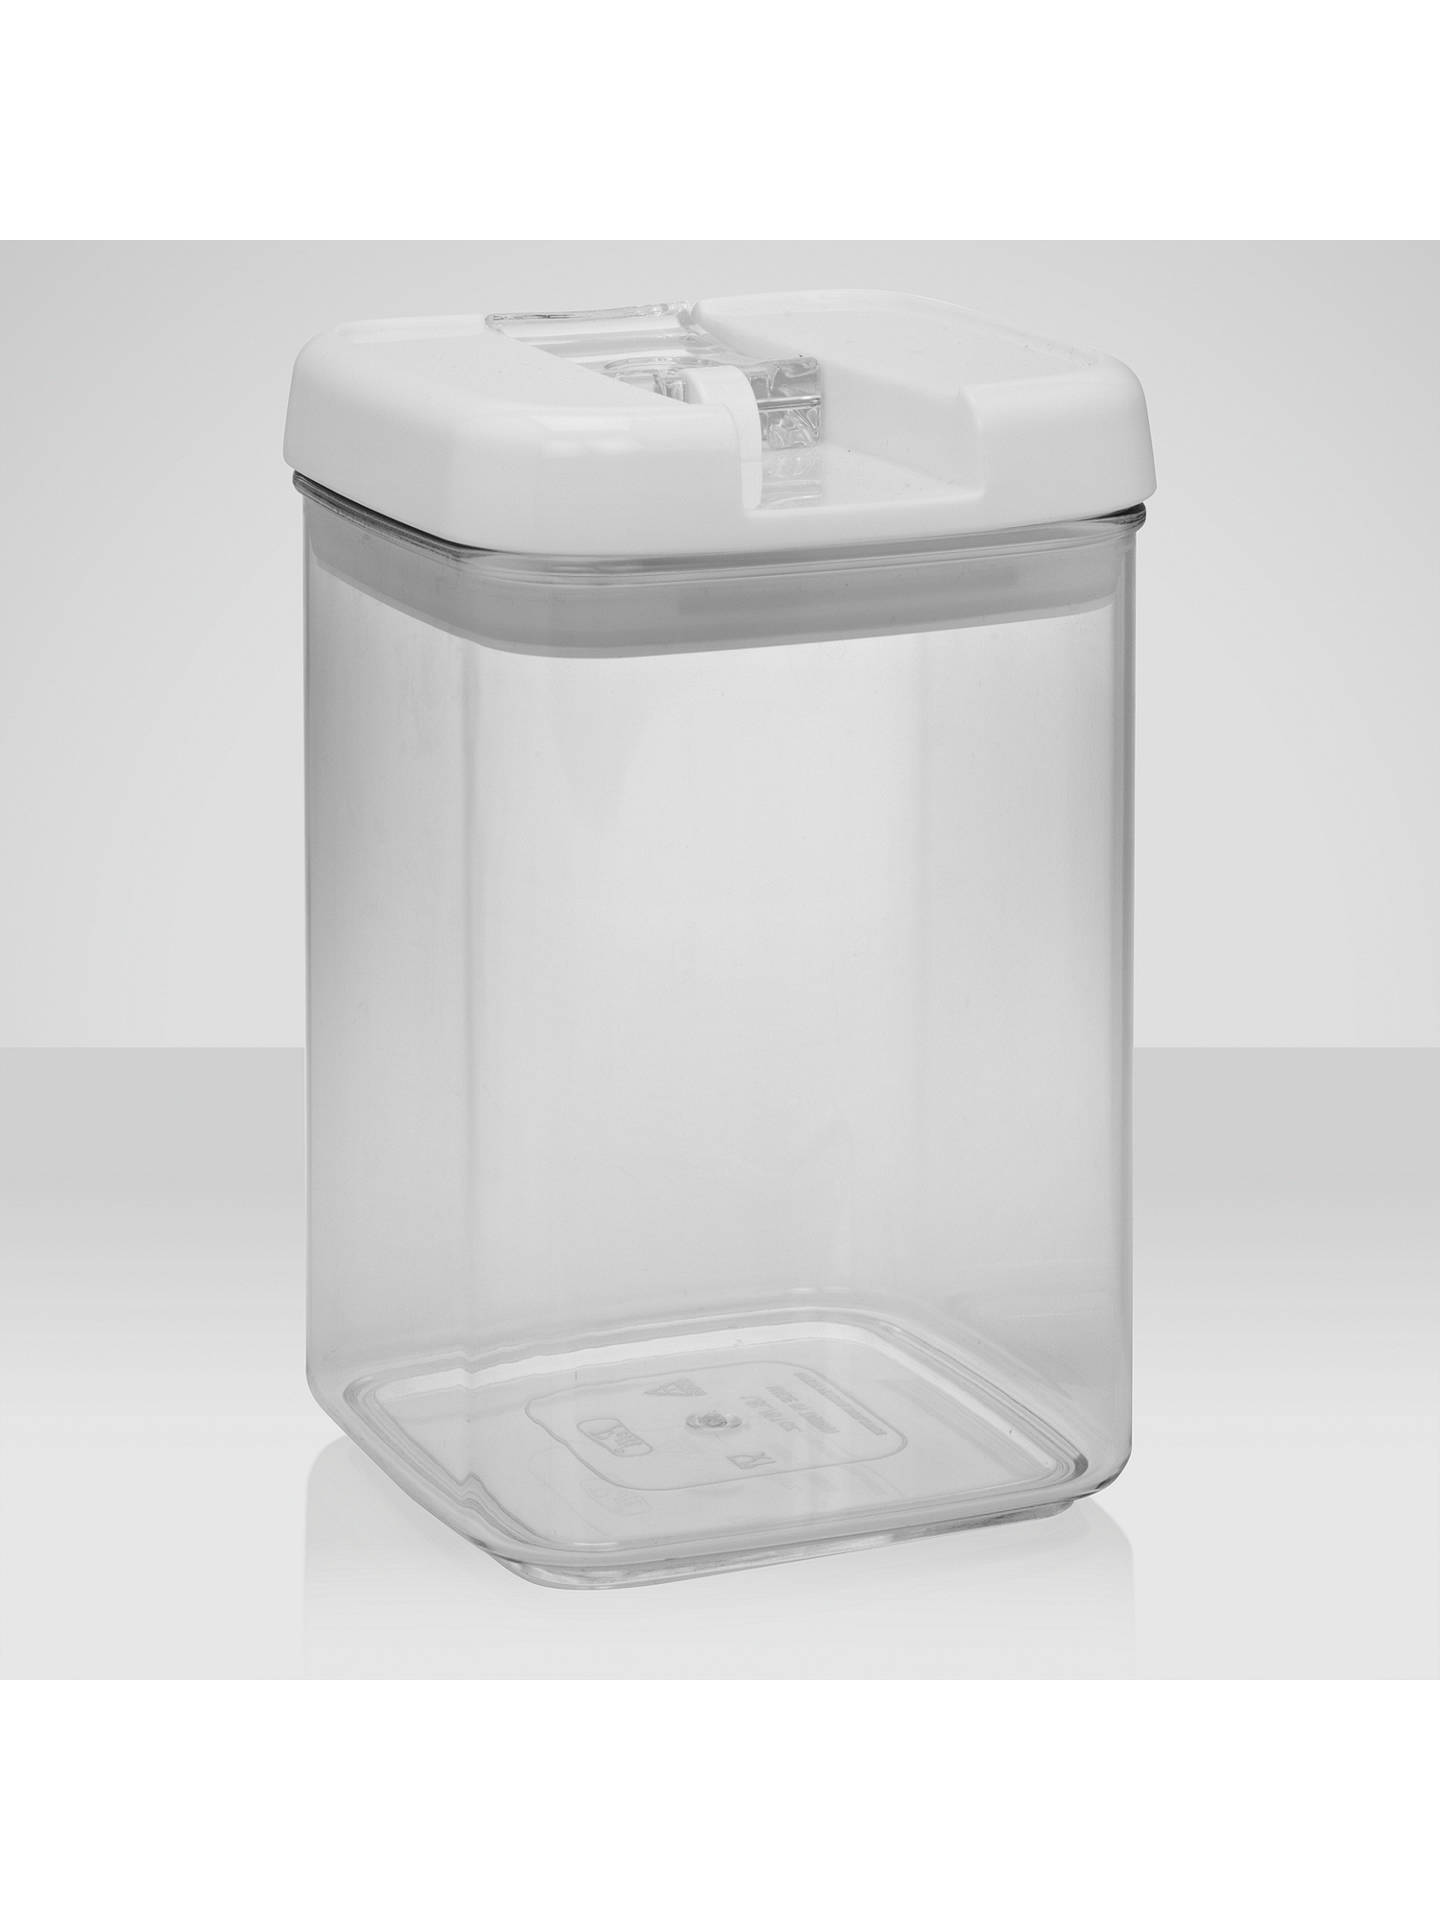 BuyJohn Lewis & Partners Flip-Tite Square Storage Container, 1.8L Online at johnlewis.com